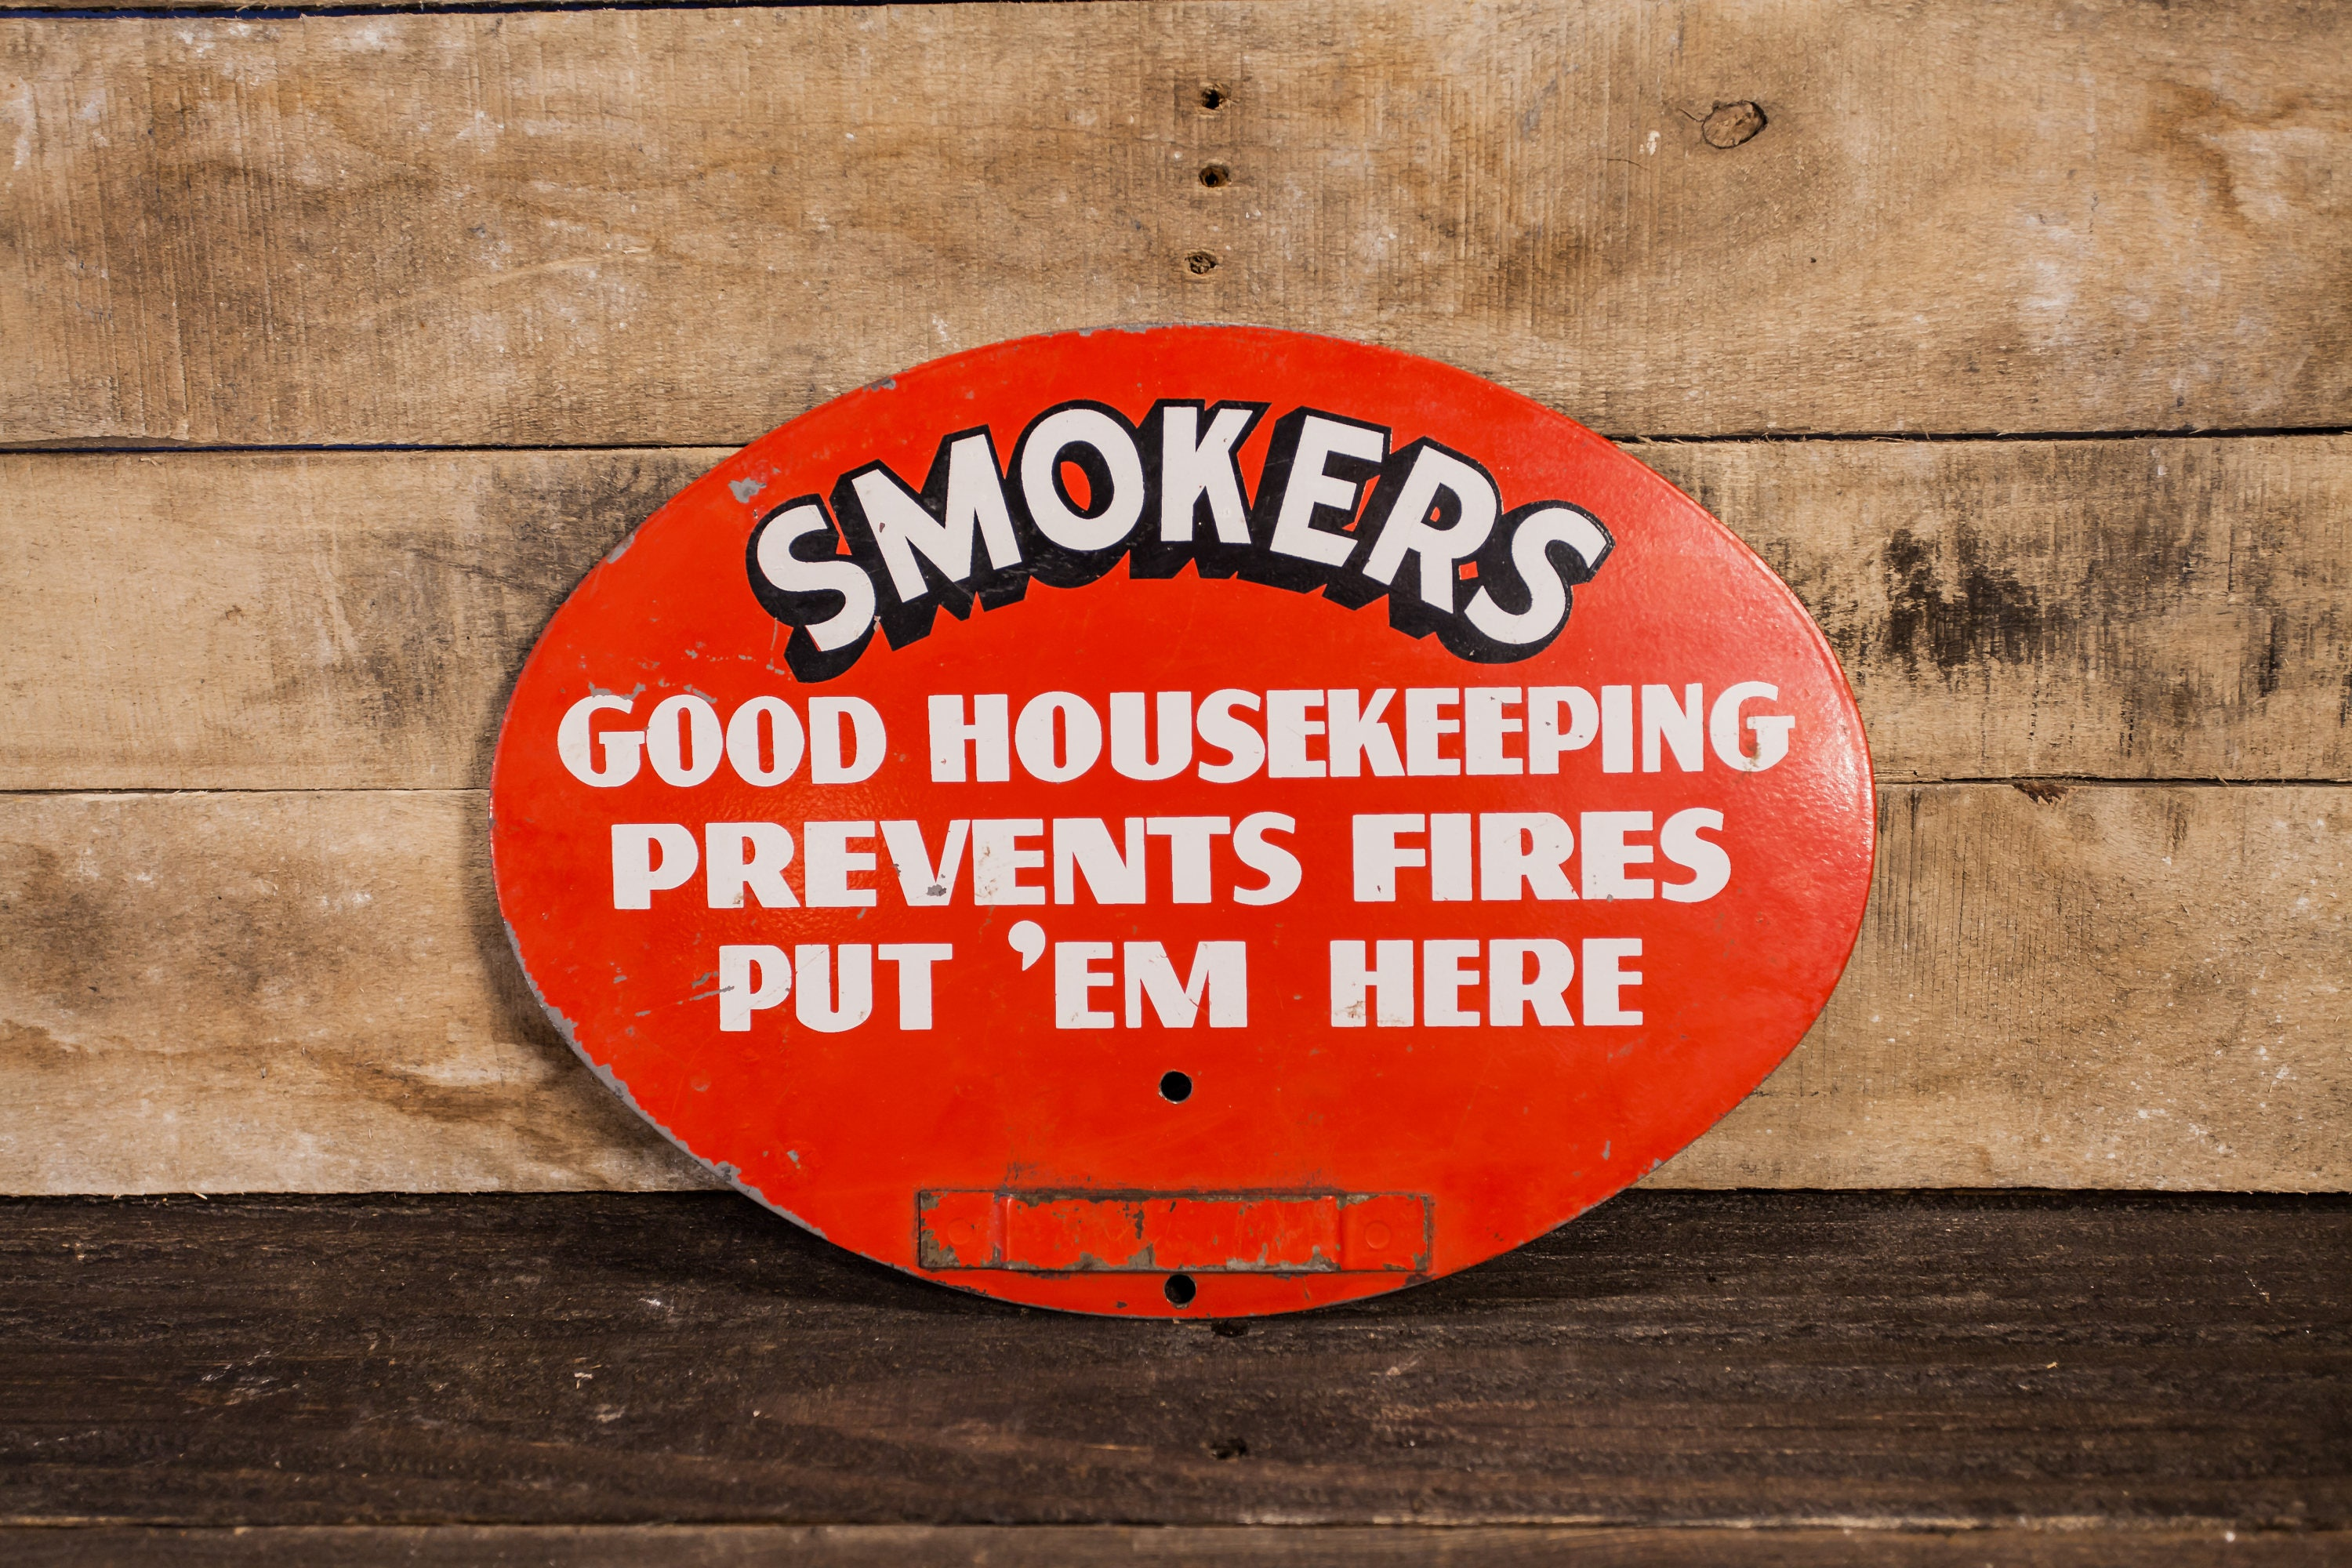 Vintage 1950s Smokers Good Housekeeping Prevents Fires Put Em Heremetal Sign Red Black White Industrial Farmhouse Garage Man Cave